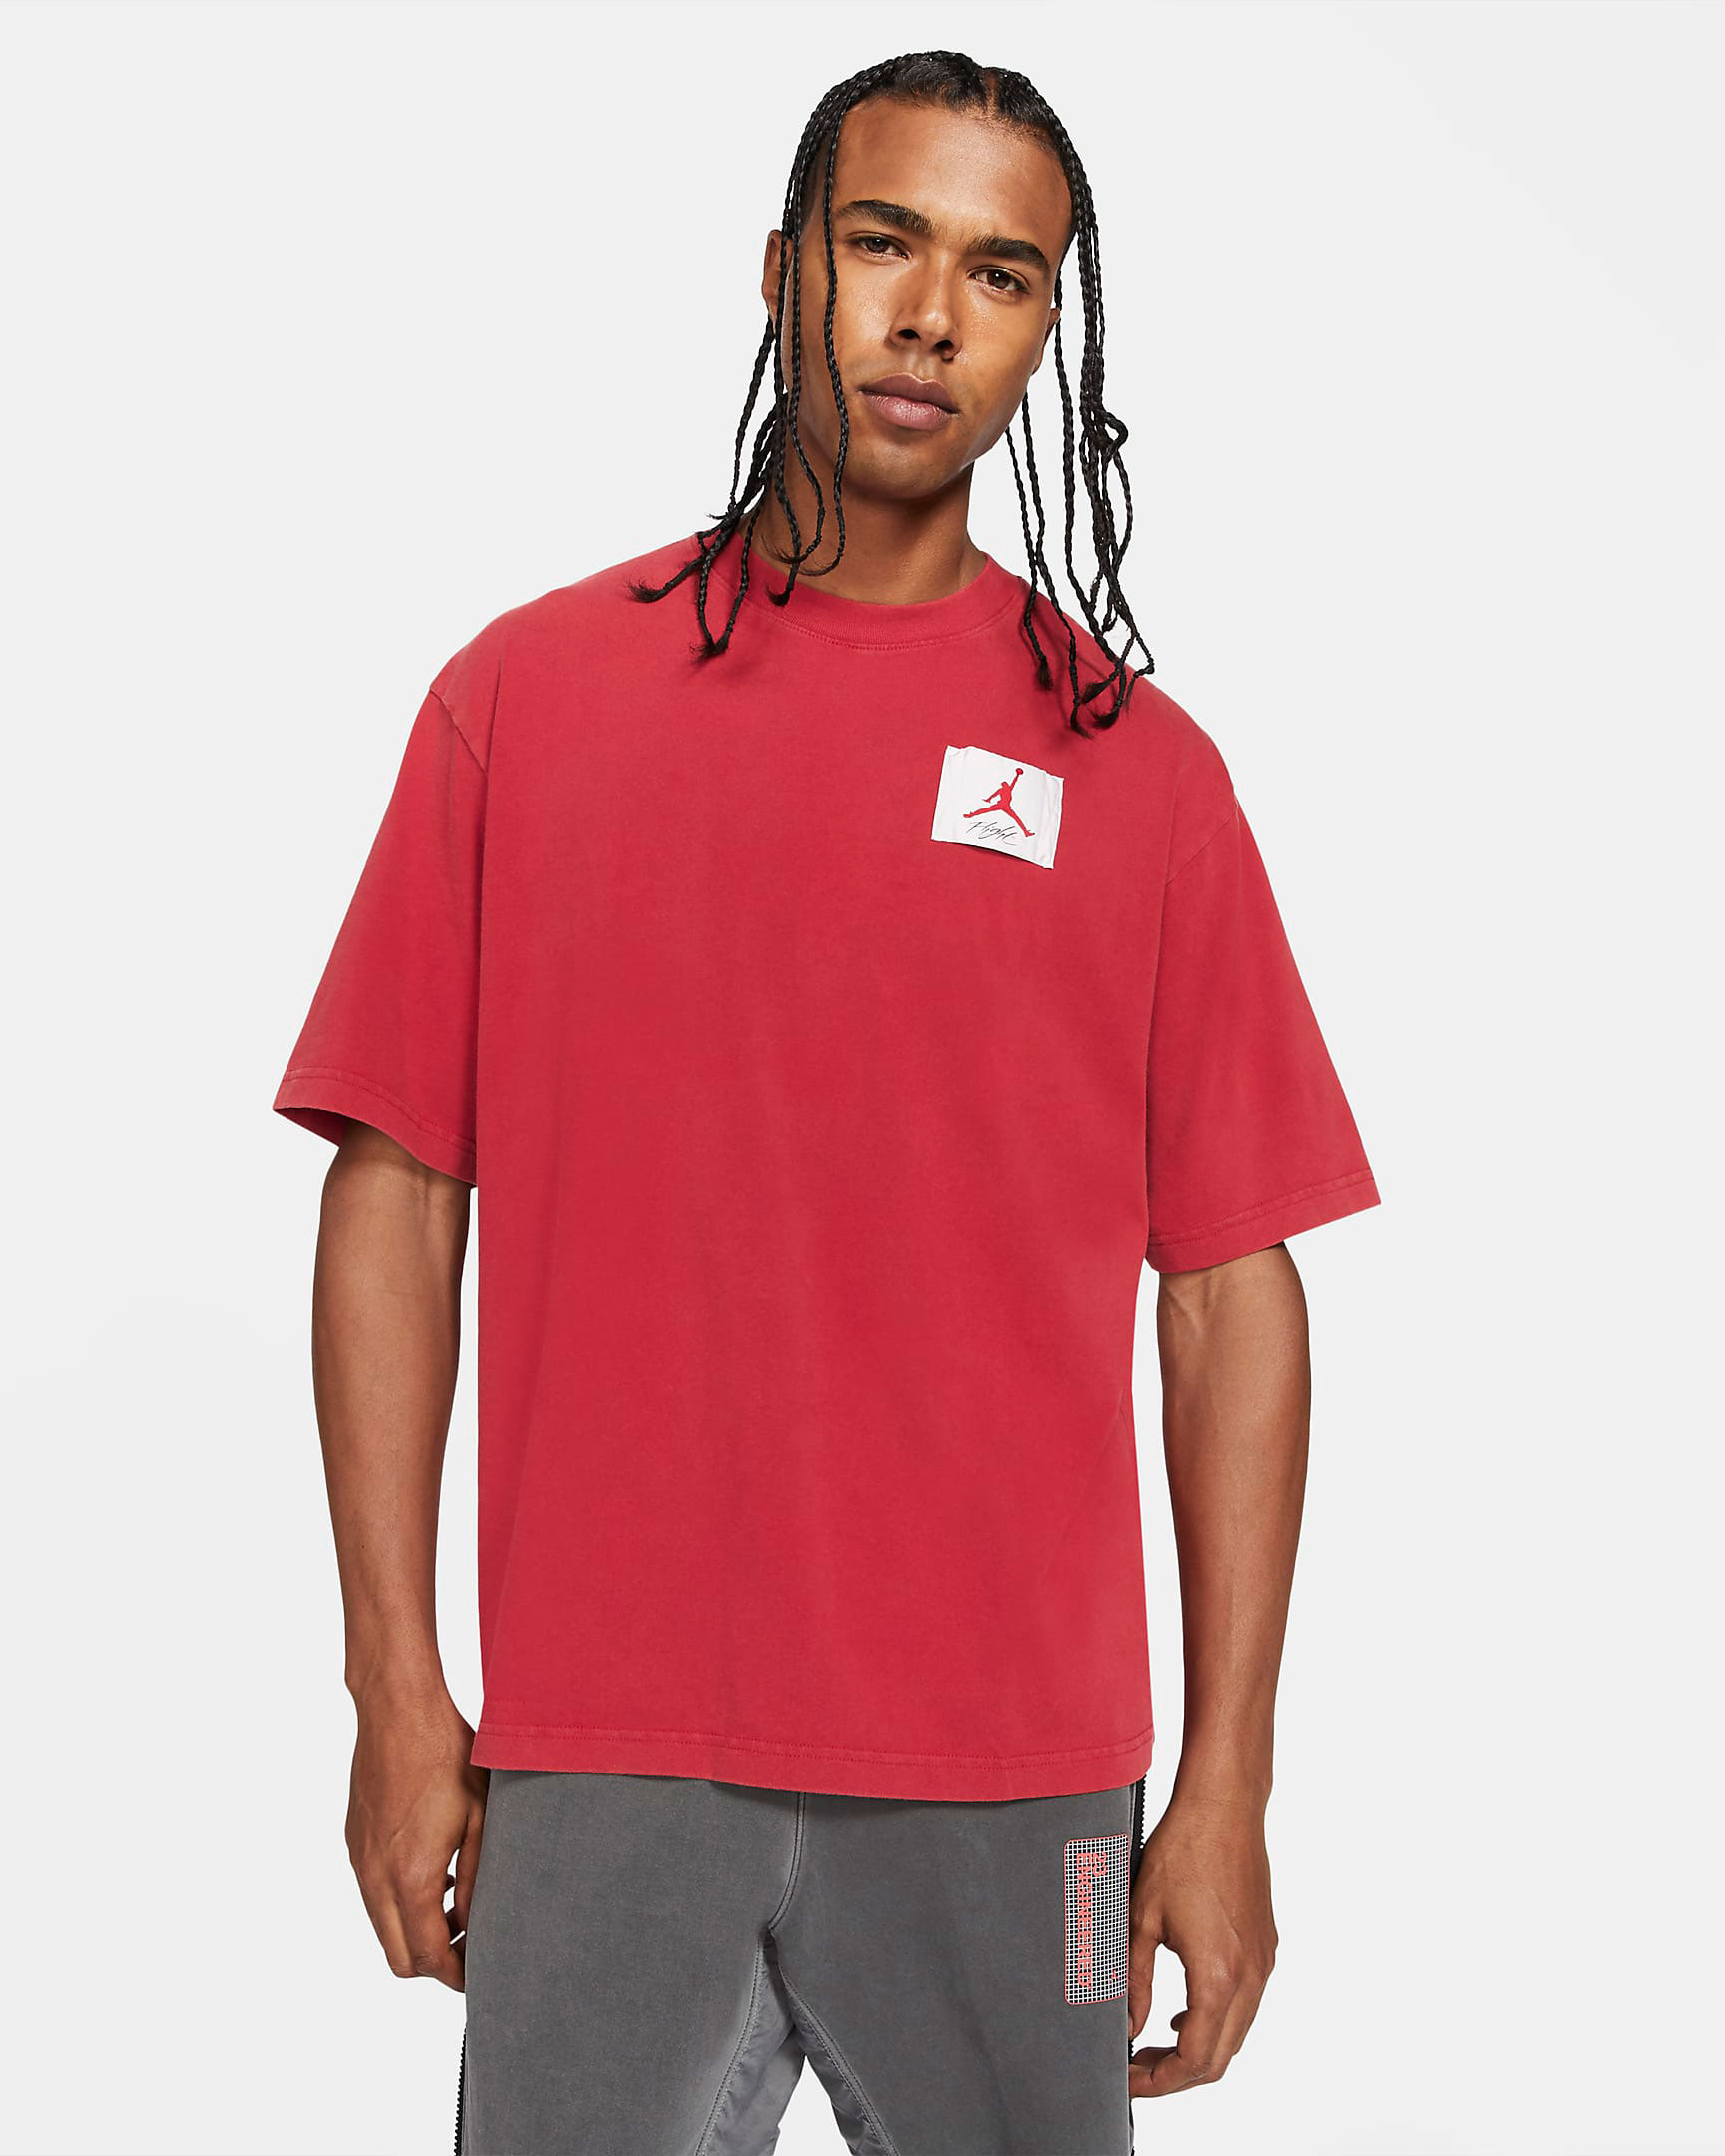 jordan-flight-shirt-red-1